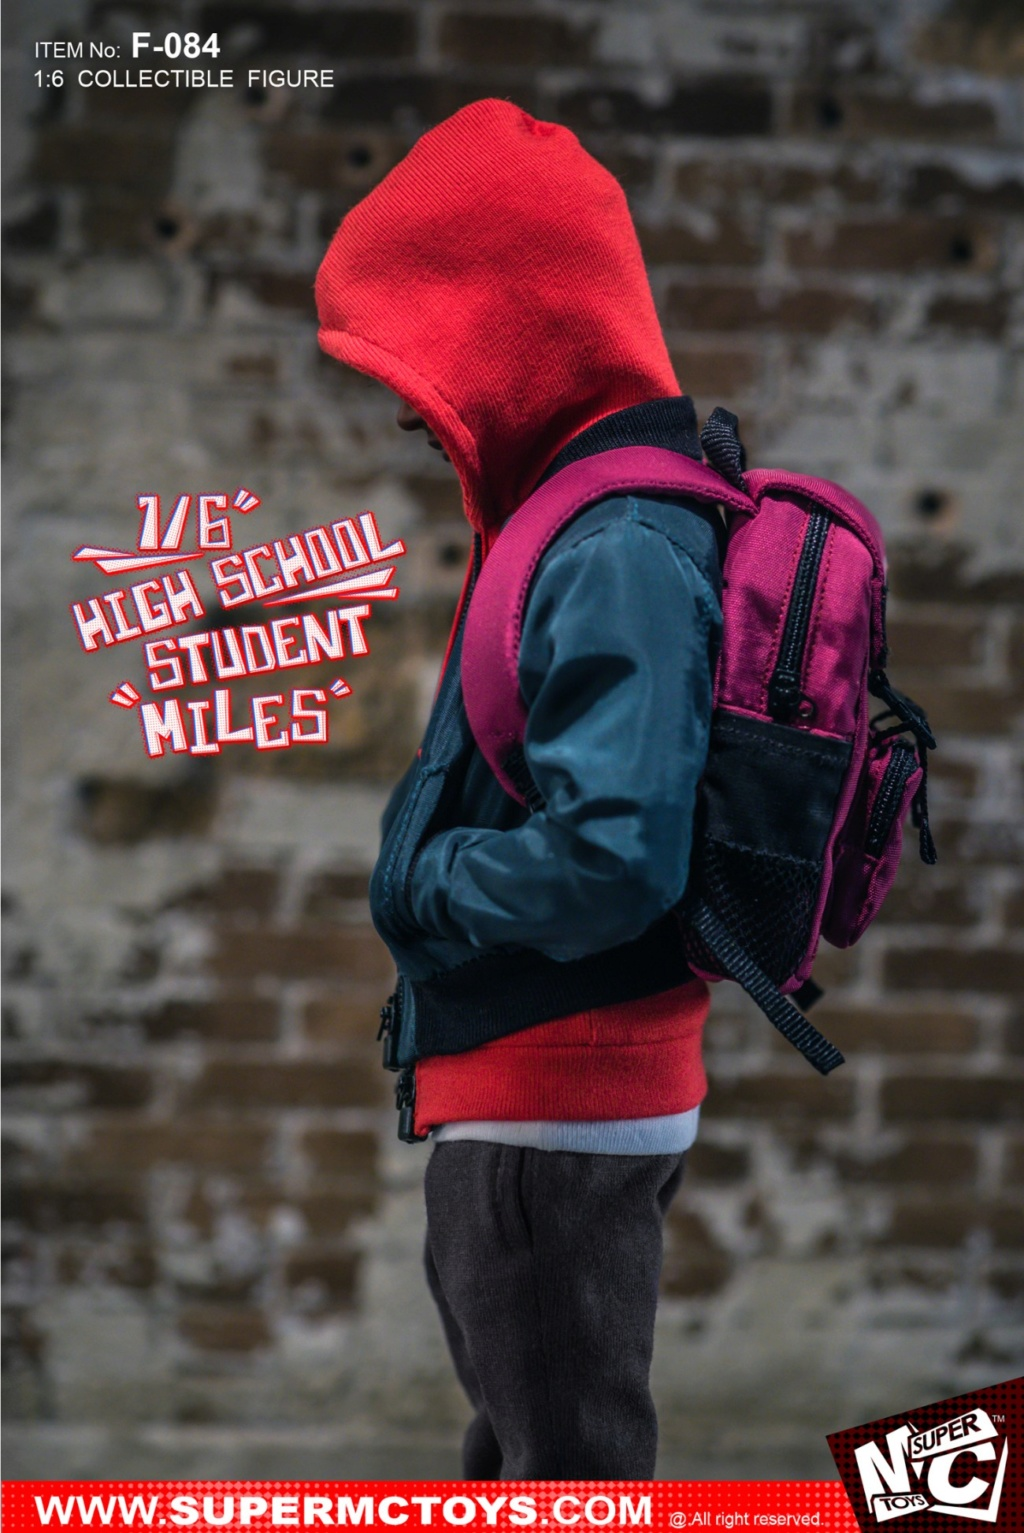 animatedmovie-based - NEW PRODUCT: SUPERMCTOYS: 1/6 High School Students - Little Black Miles Miles Movable F-084# 19374310